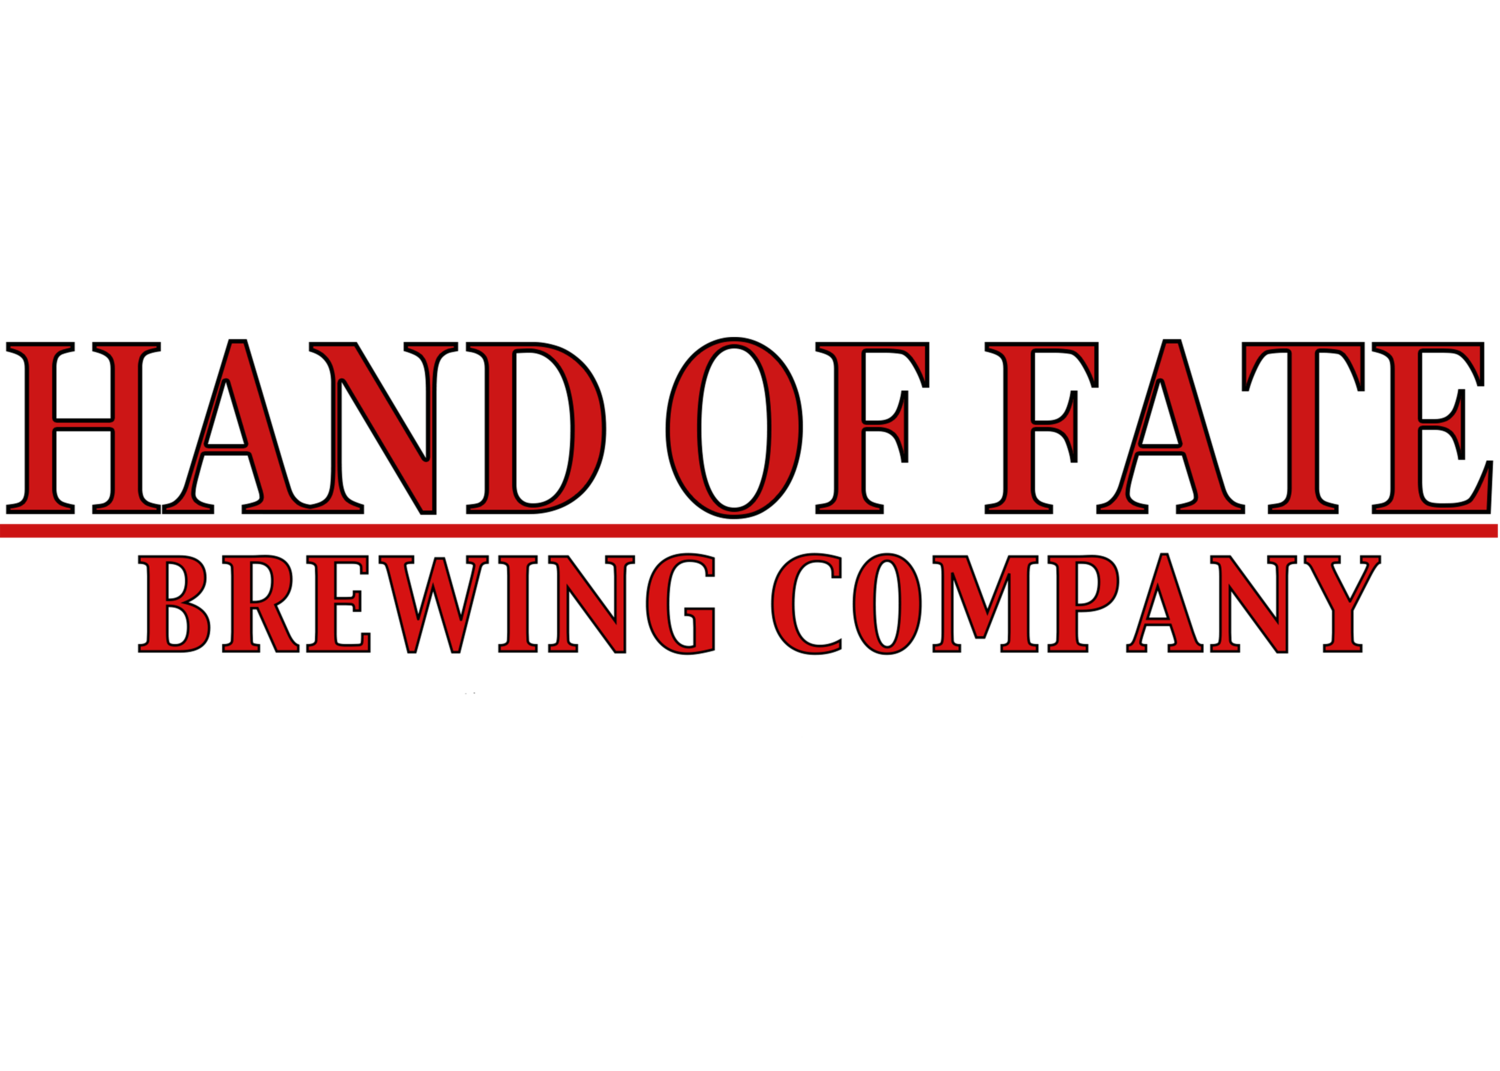 Hand of Fate Brewing